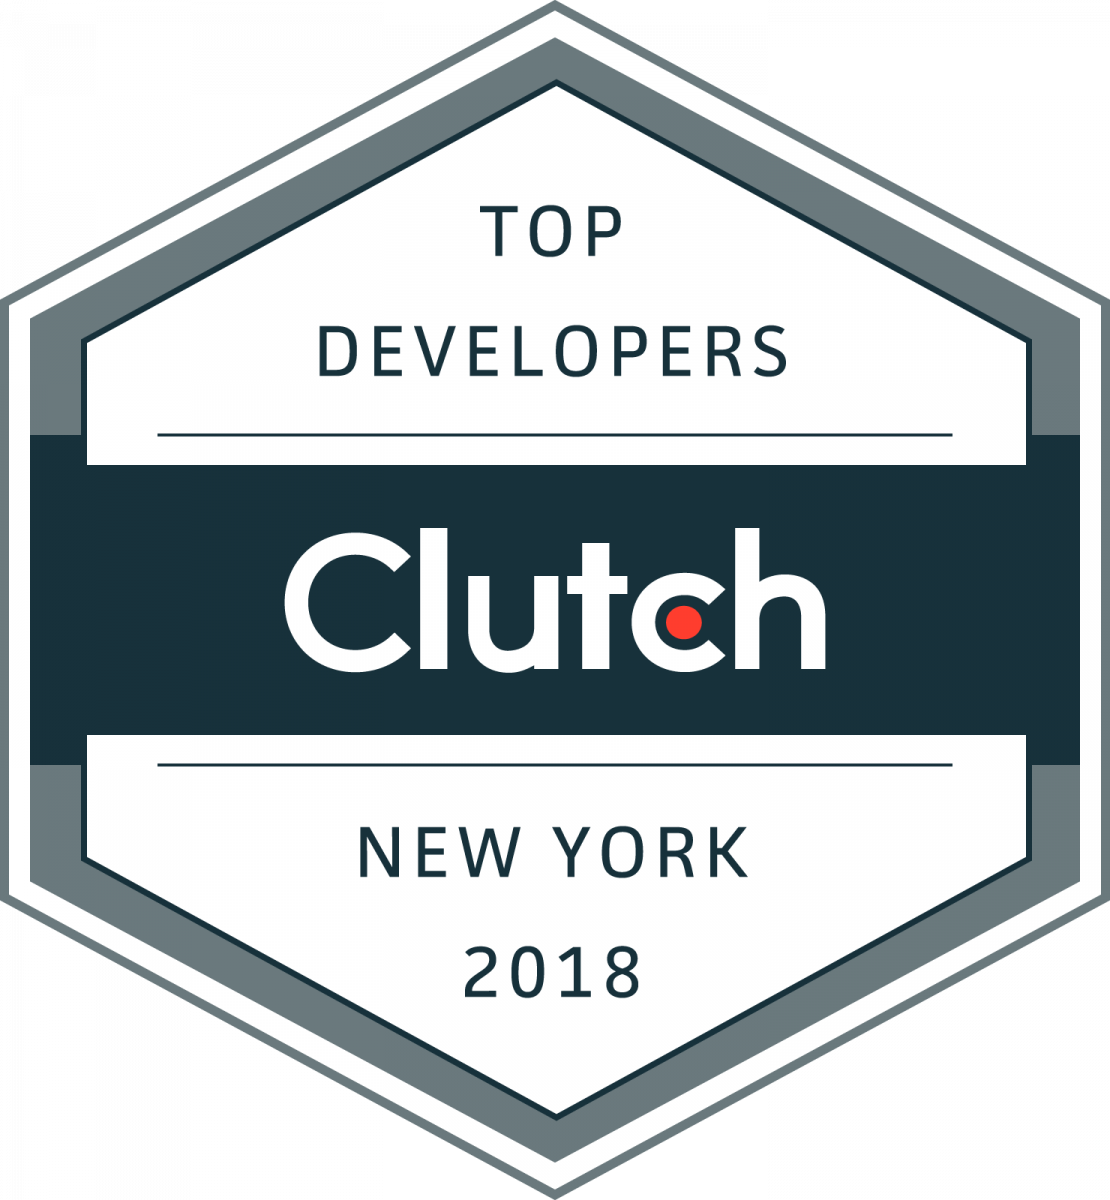 Top Developers New York Badge 2018